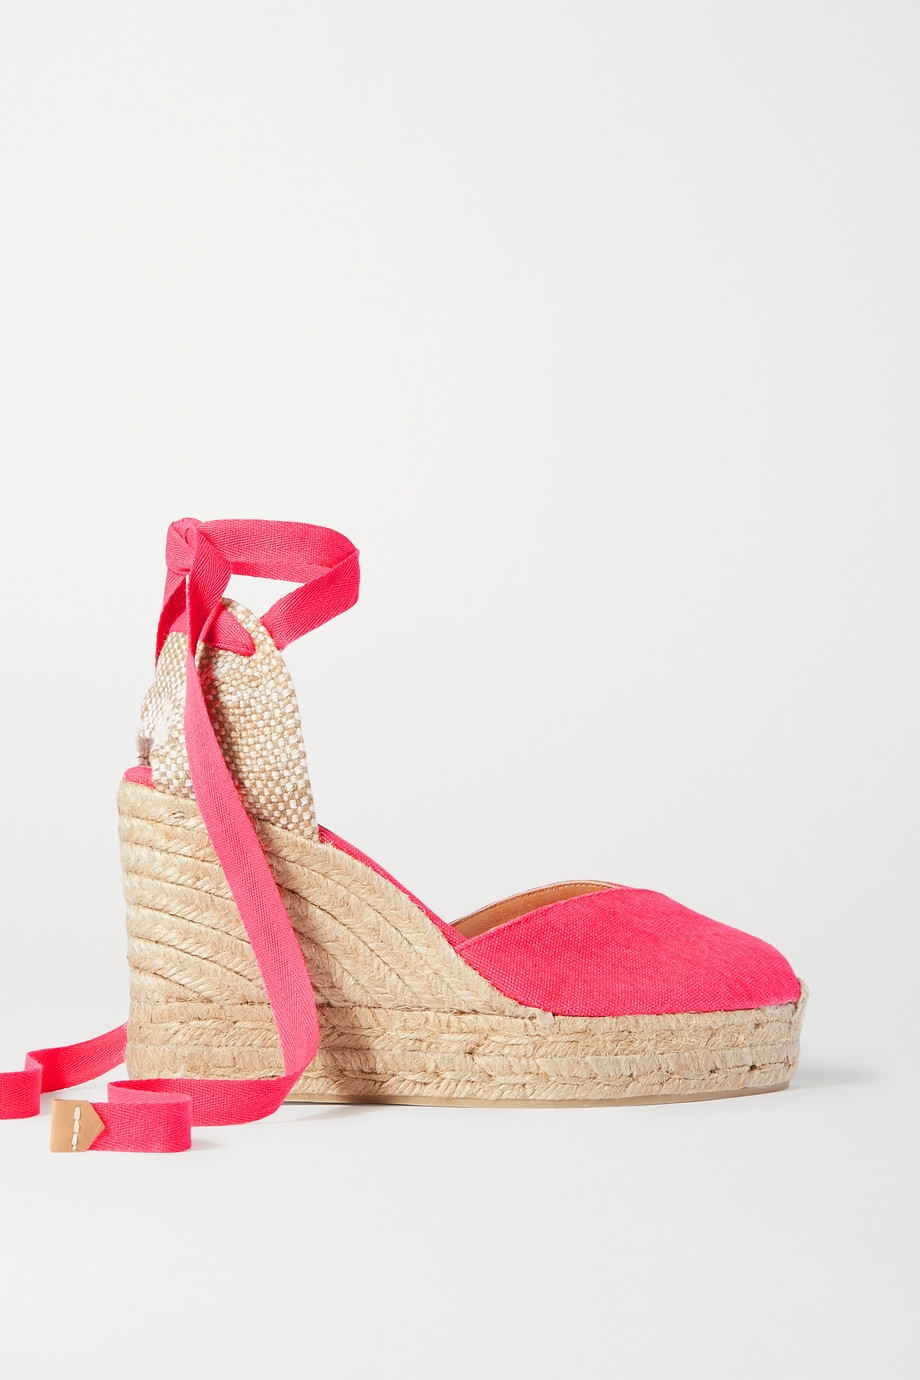 Castañer Chiara 80 canvas wedge espadrilles